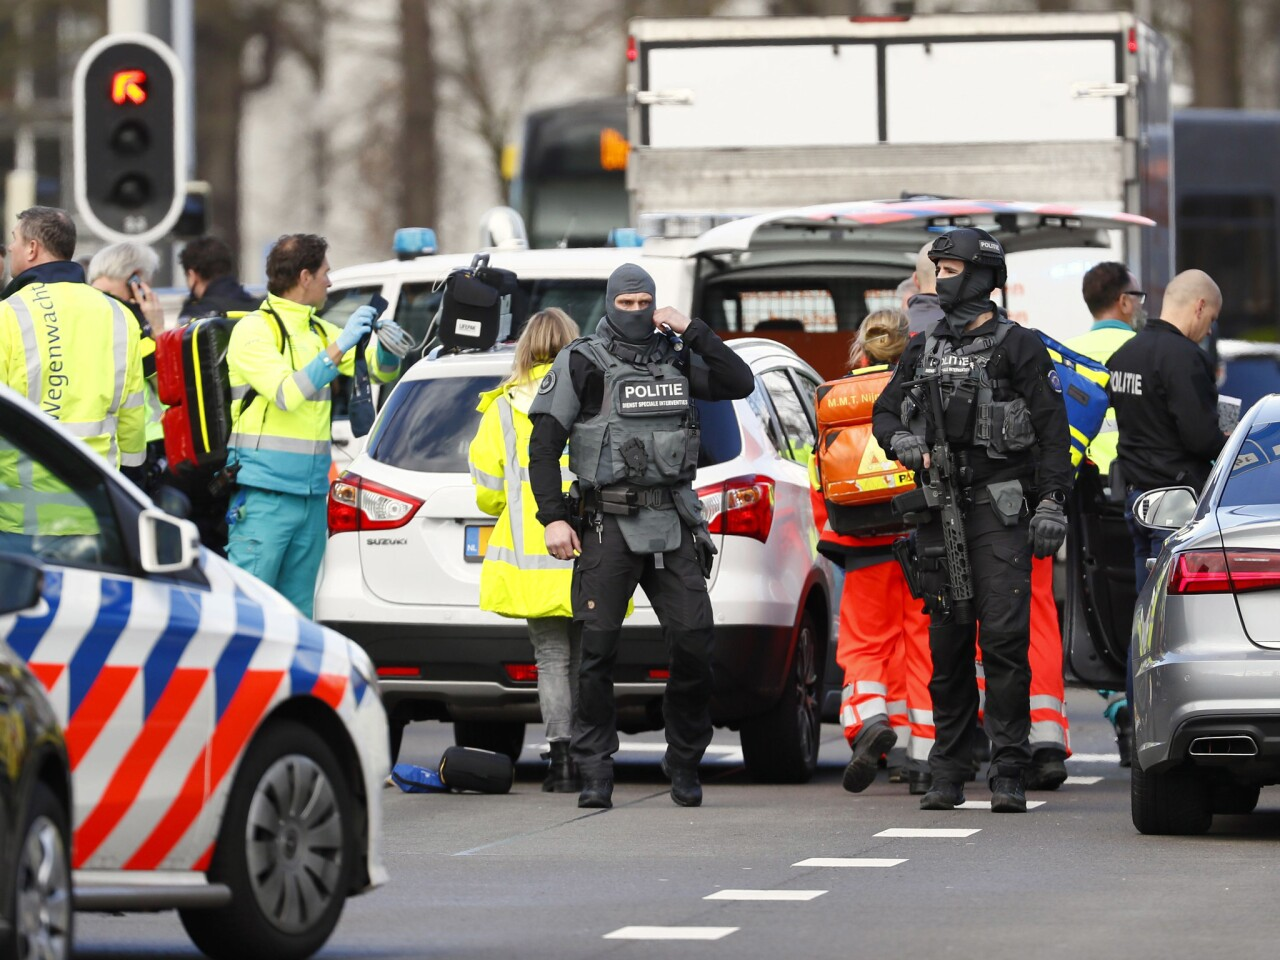 Police and emergency pensonnel at the scene where several people were wounded in a shooting on a tram in the Dutch city of Utrecht.